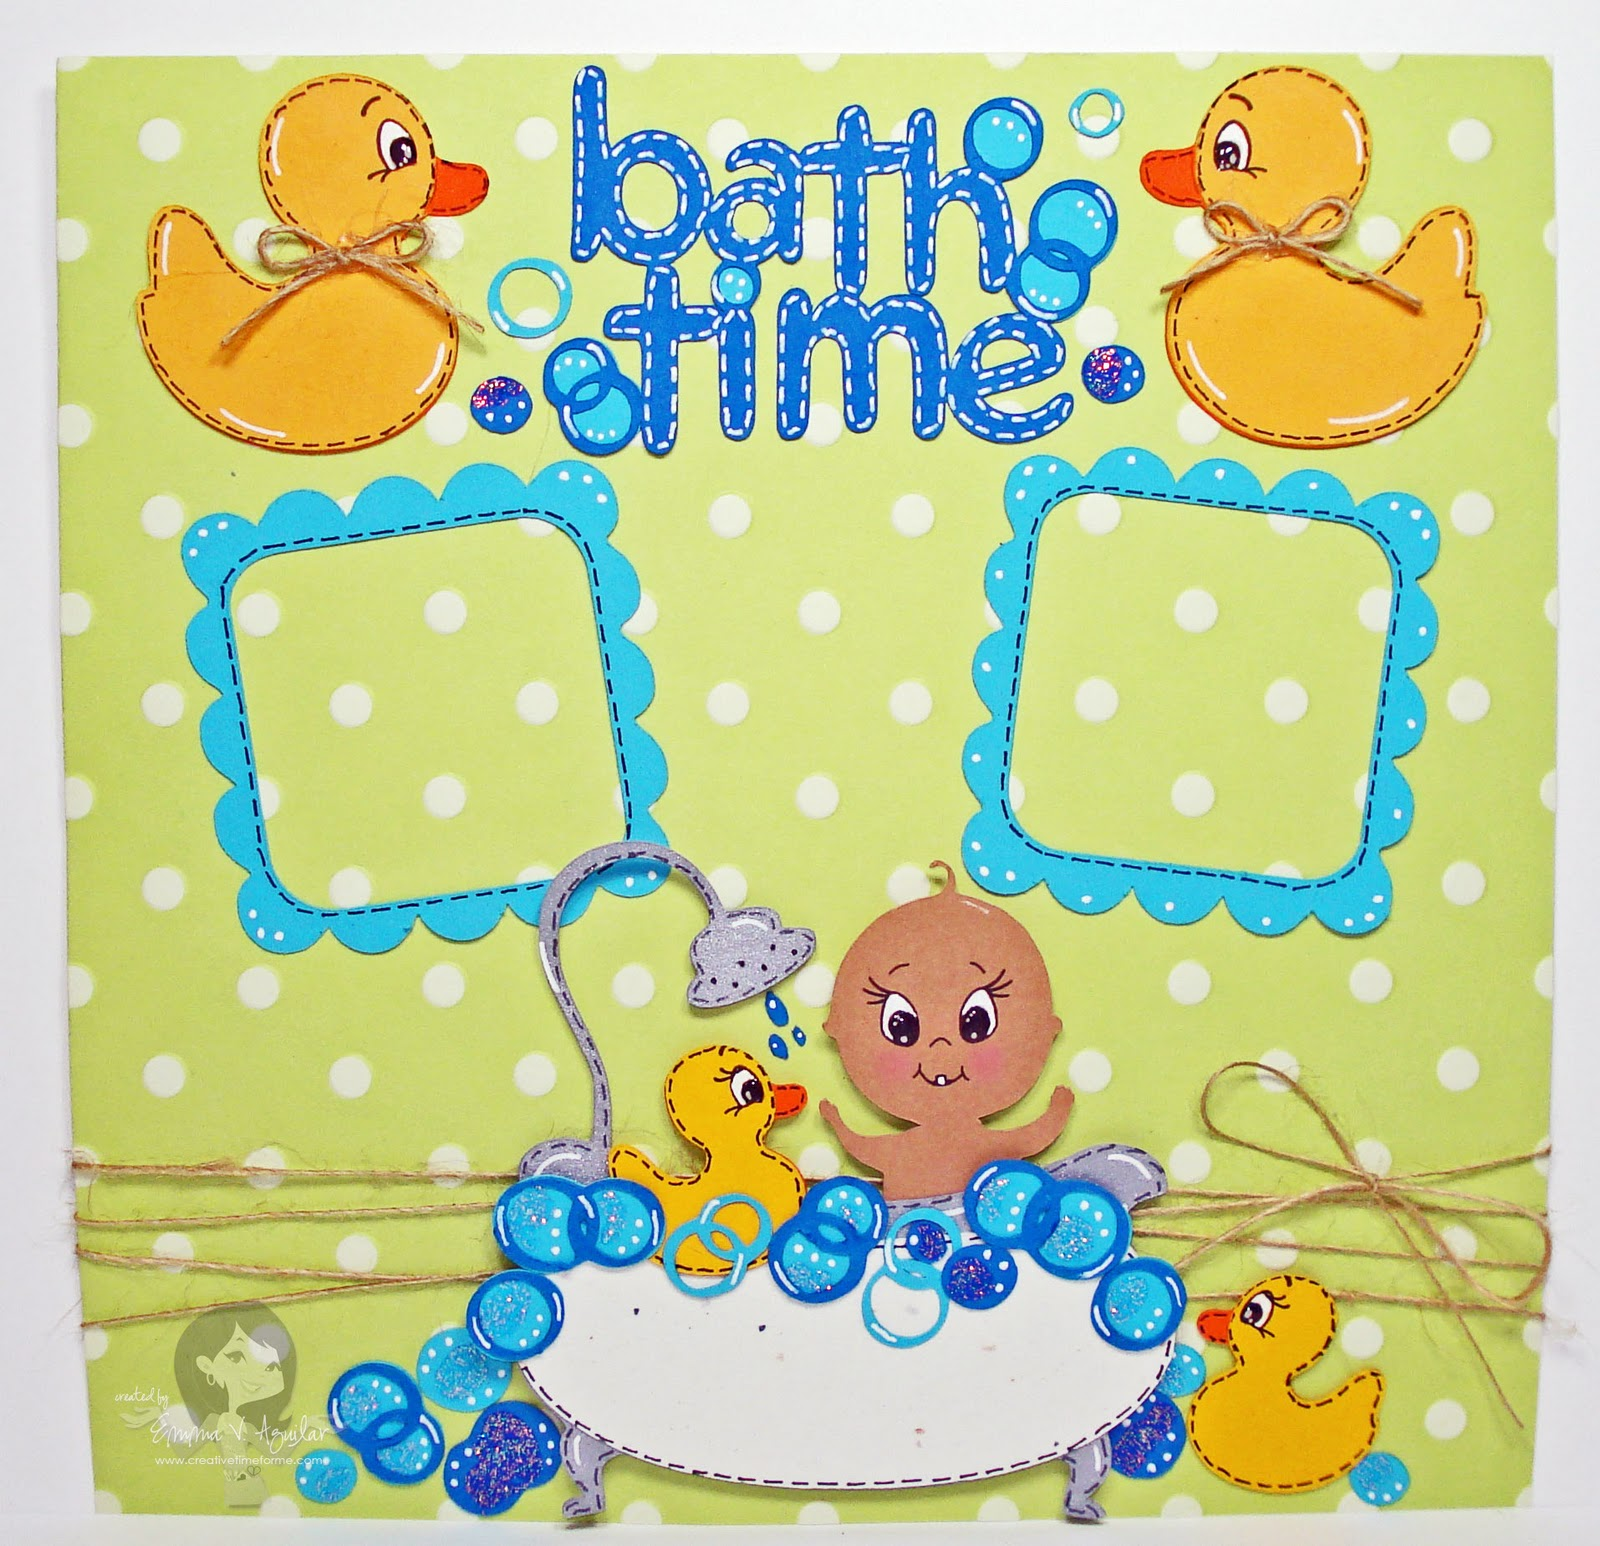 Baby journal scrapbook ideas - 136 Best Images About Baby Boy Scrapbook Pages On Pinterest Baby Scrapbook Layouts Scrapbook Albums And Baby Steps